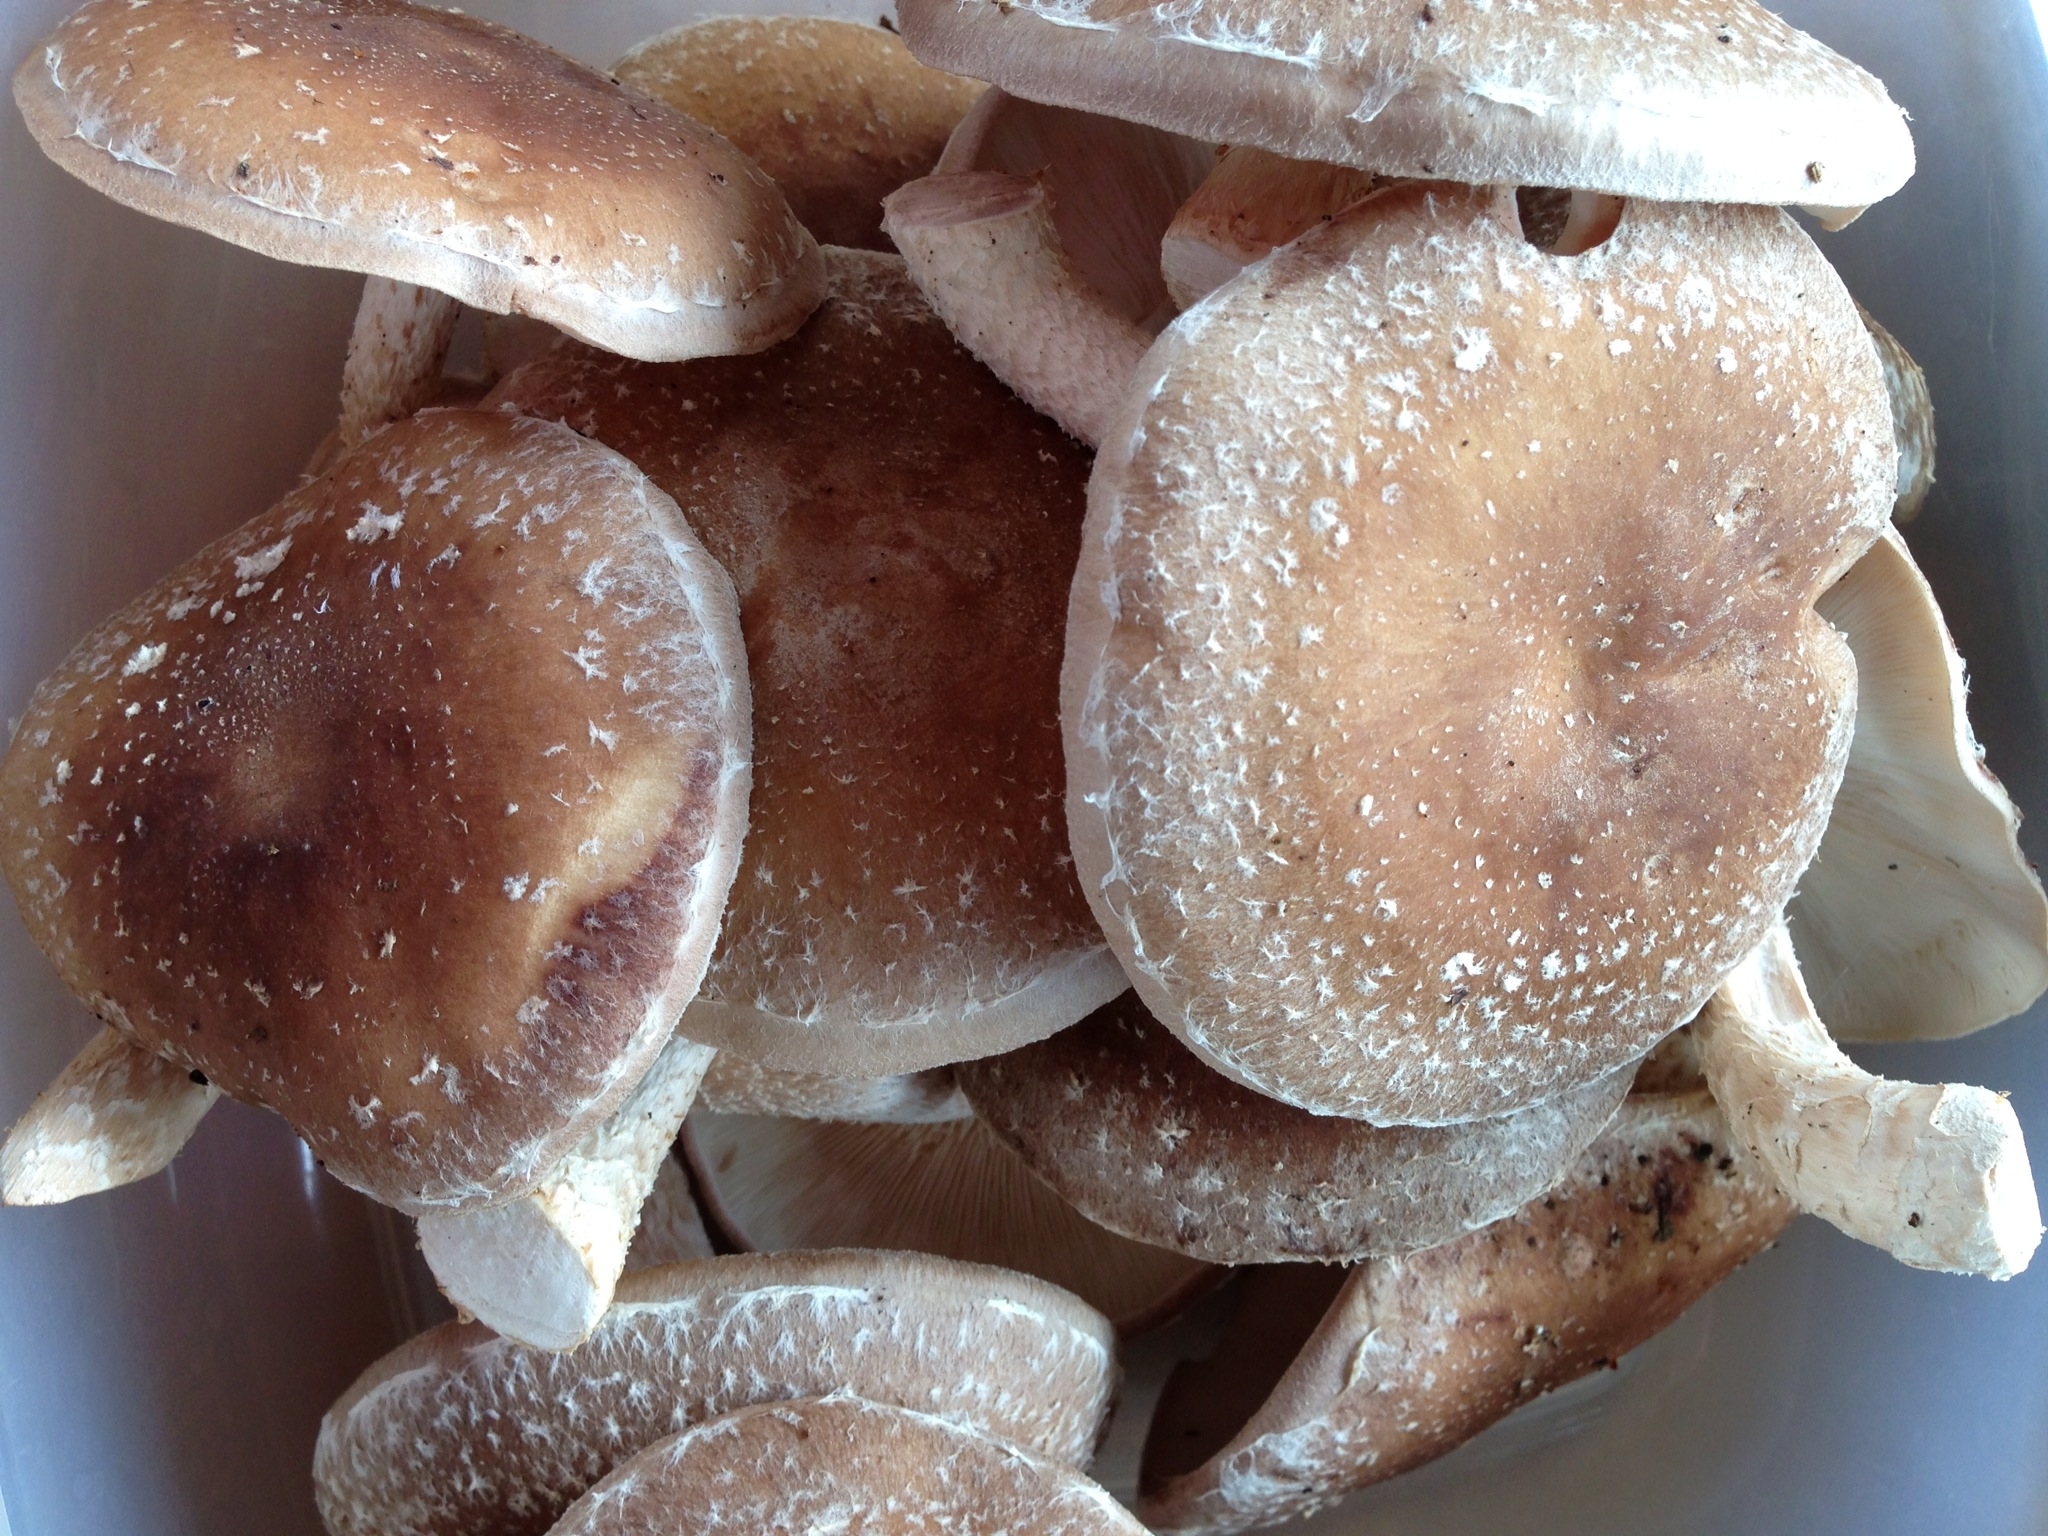 How can the mushrooms be preserved